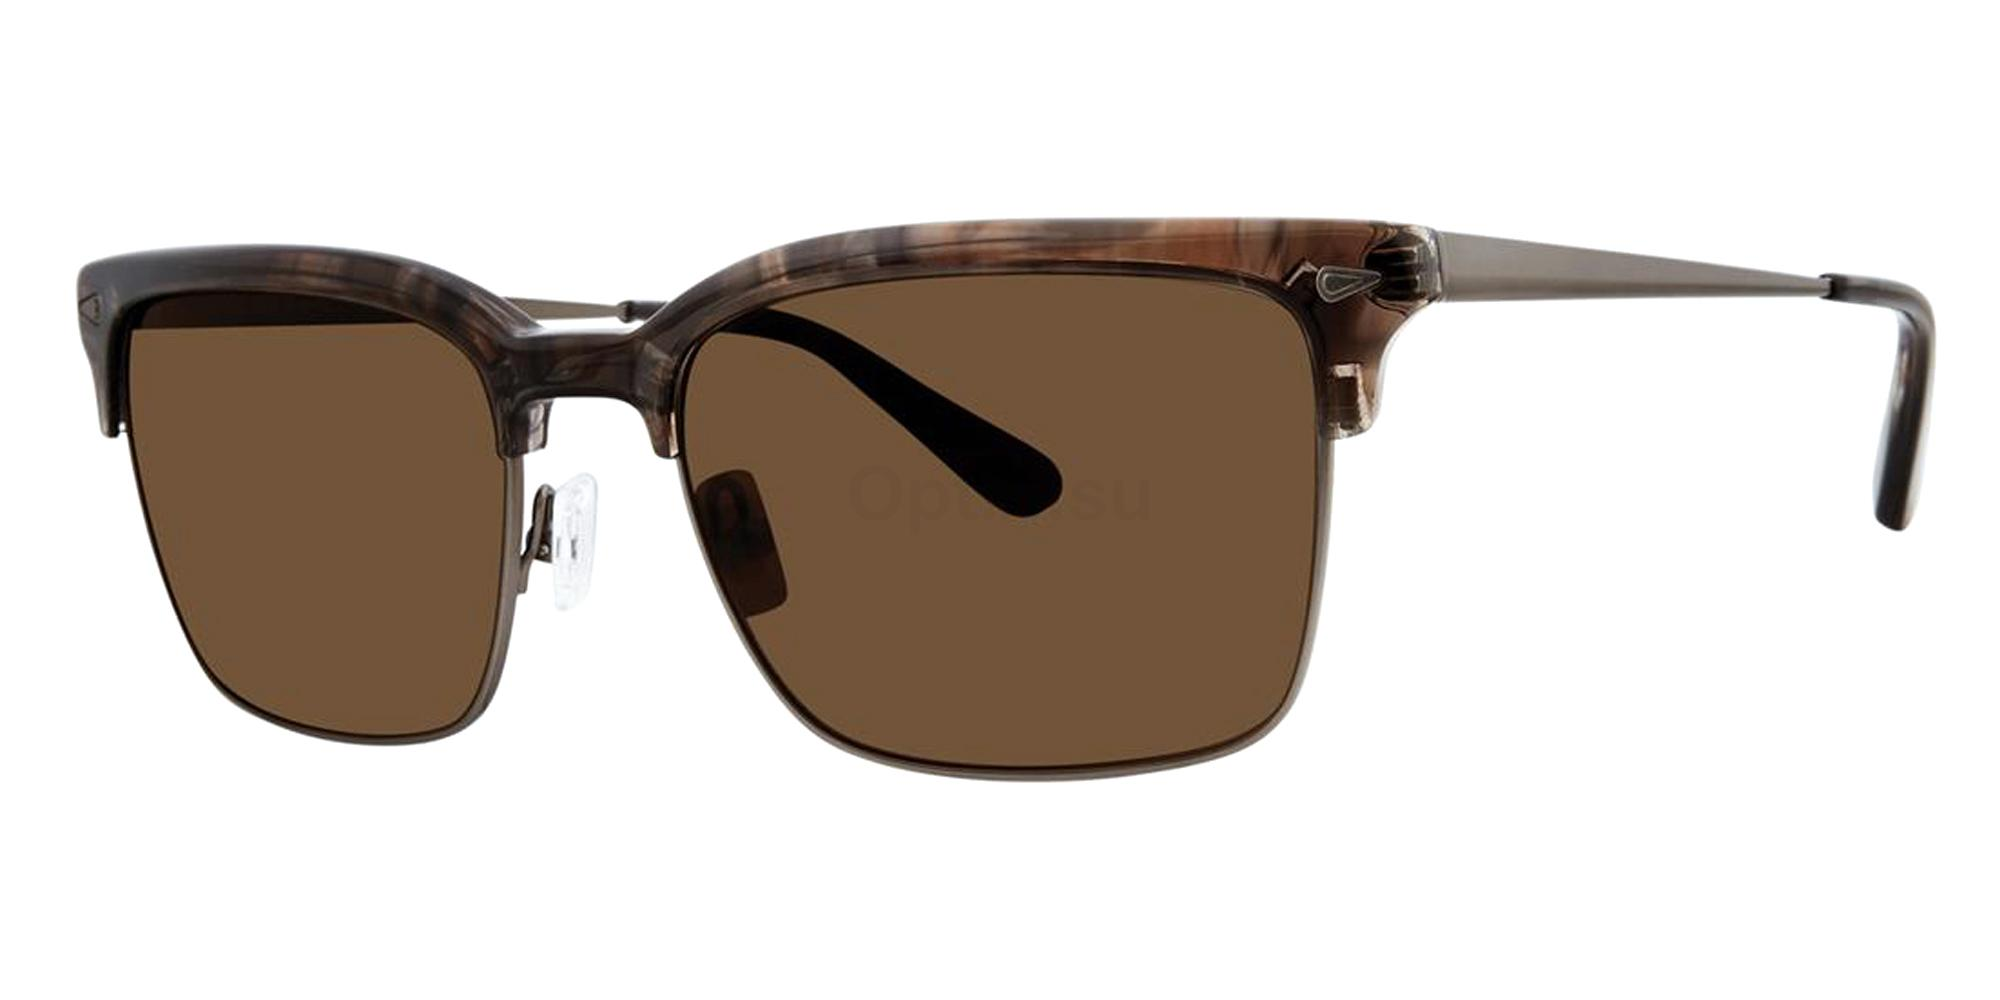 Crystal Walnut DRIGGS Sunglasses, Zac Posen